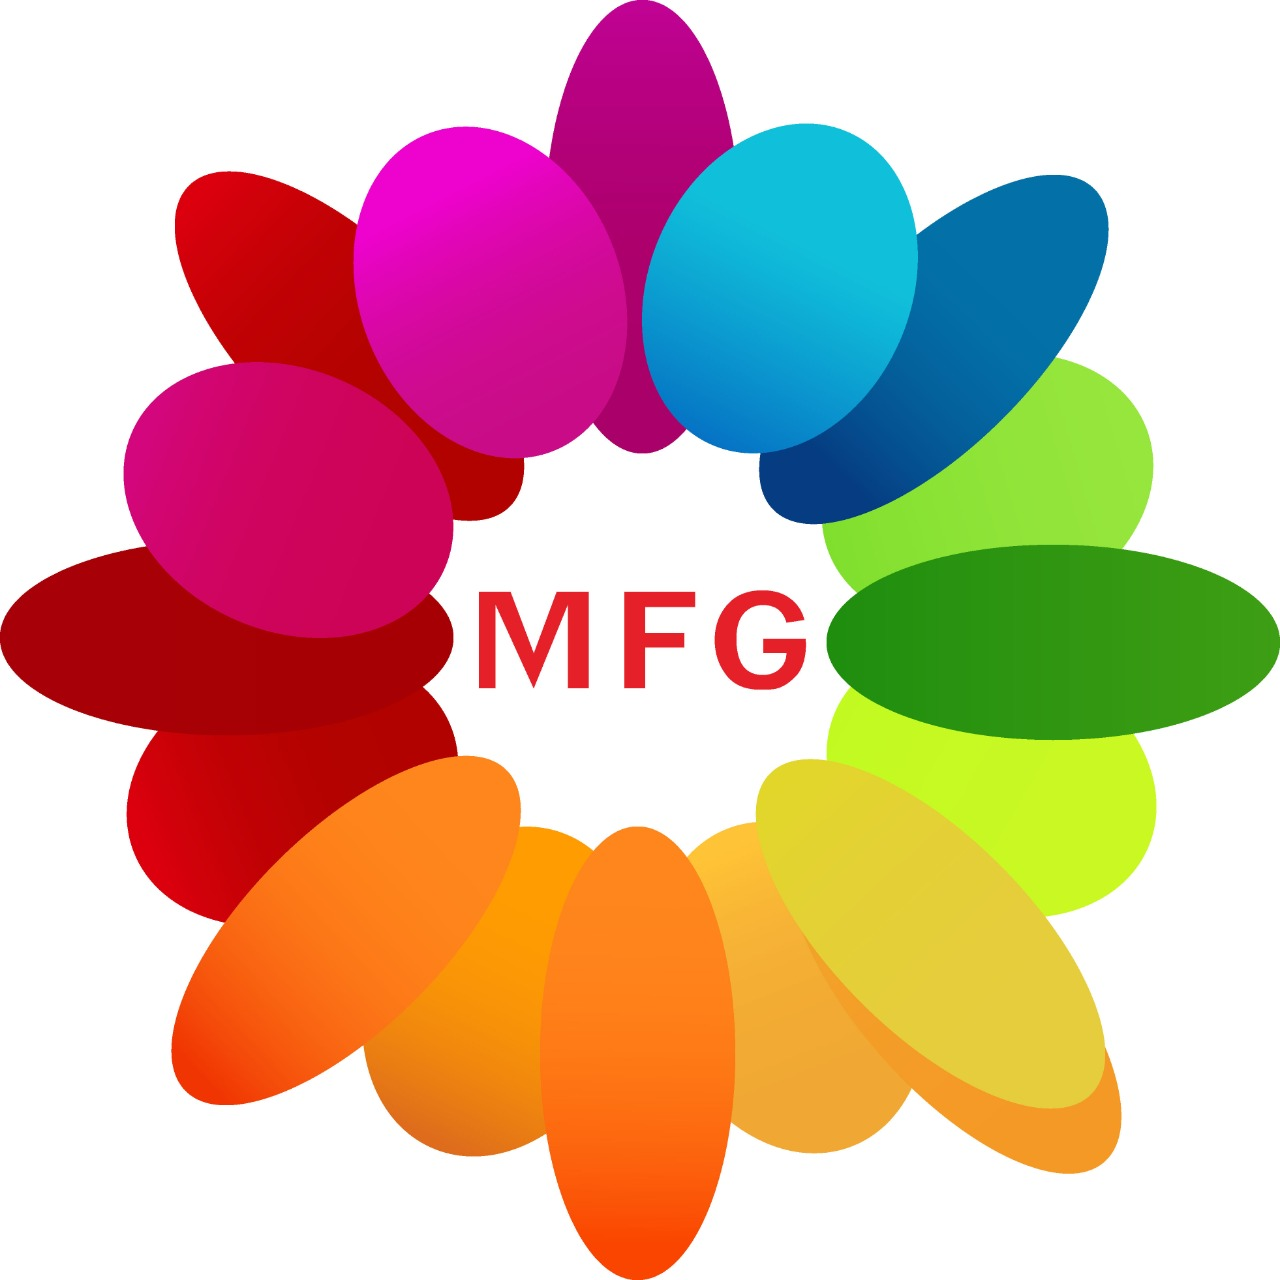 1/2kg Chocolate Fruit  Premium Cake